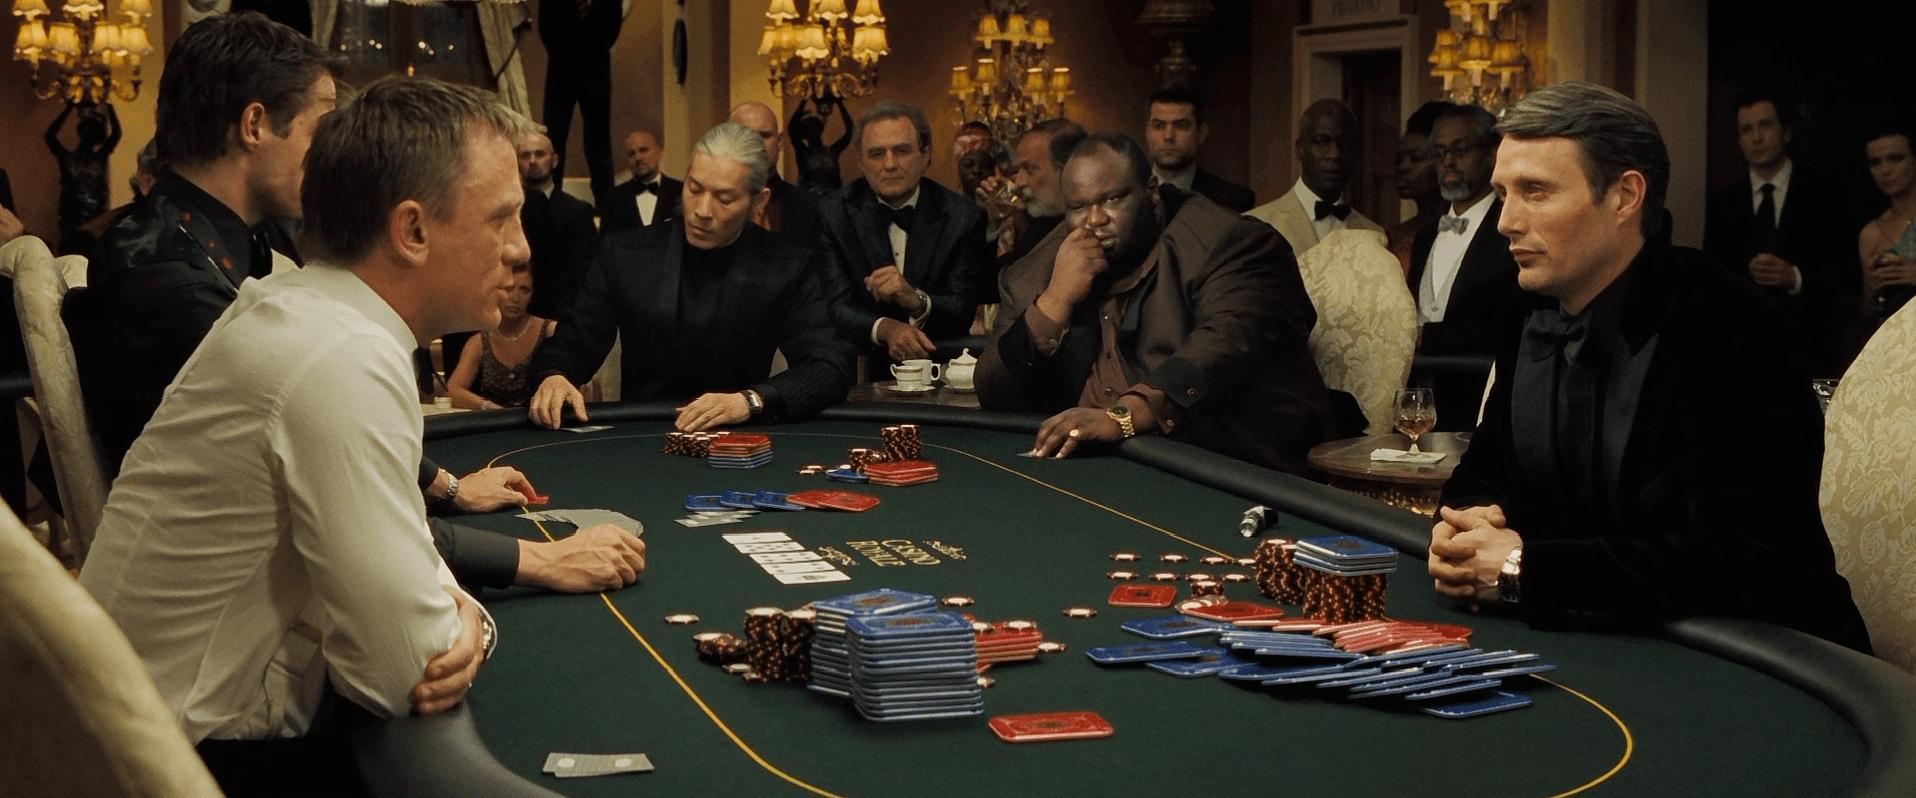 007 casino royale scena poker